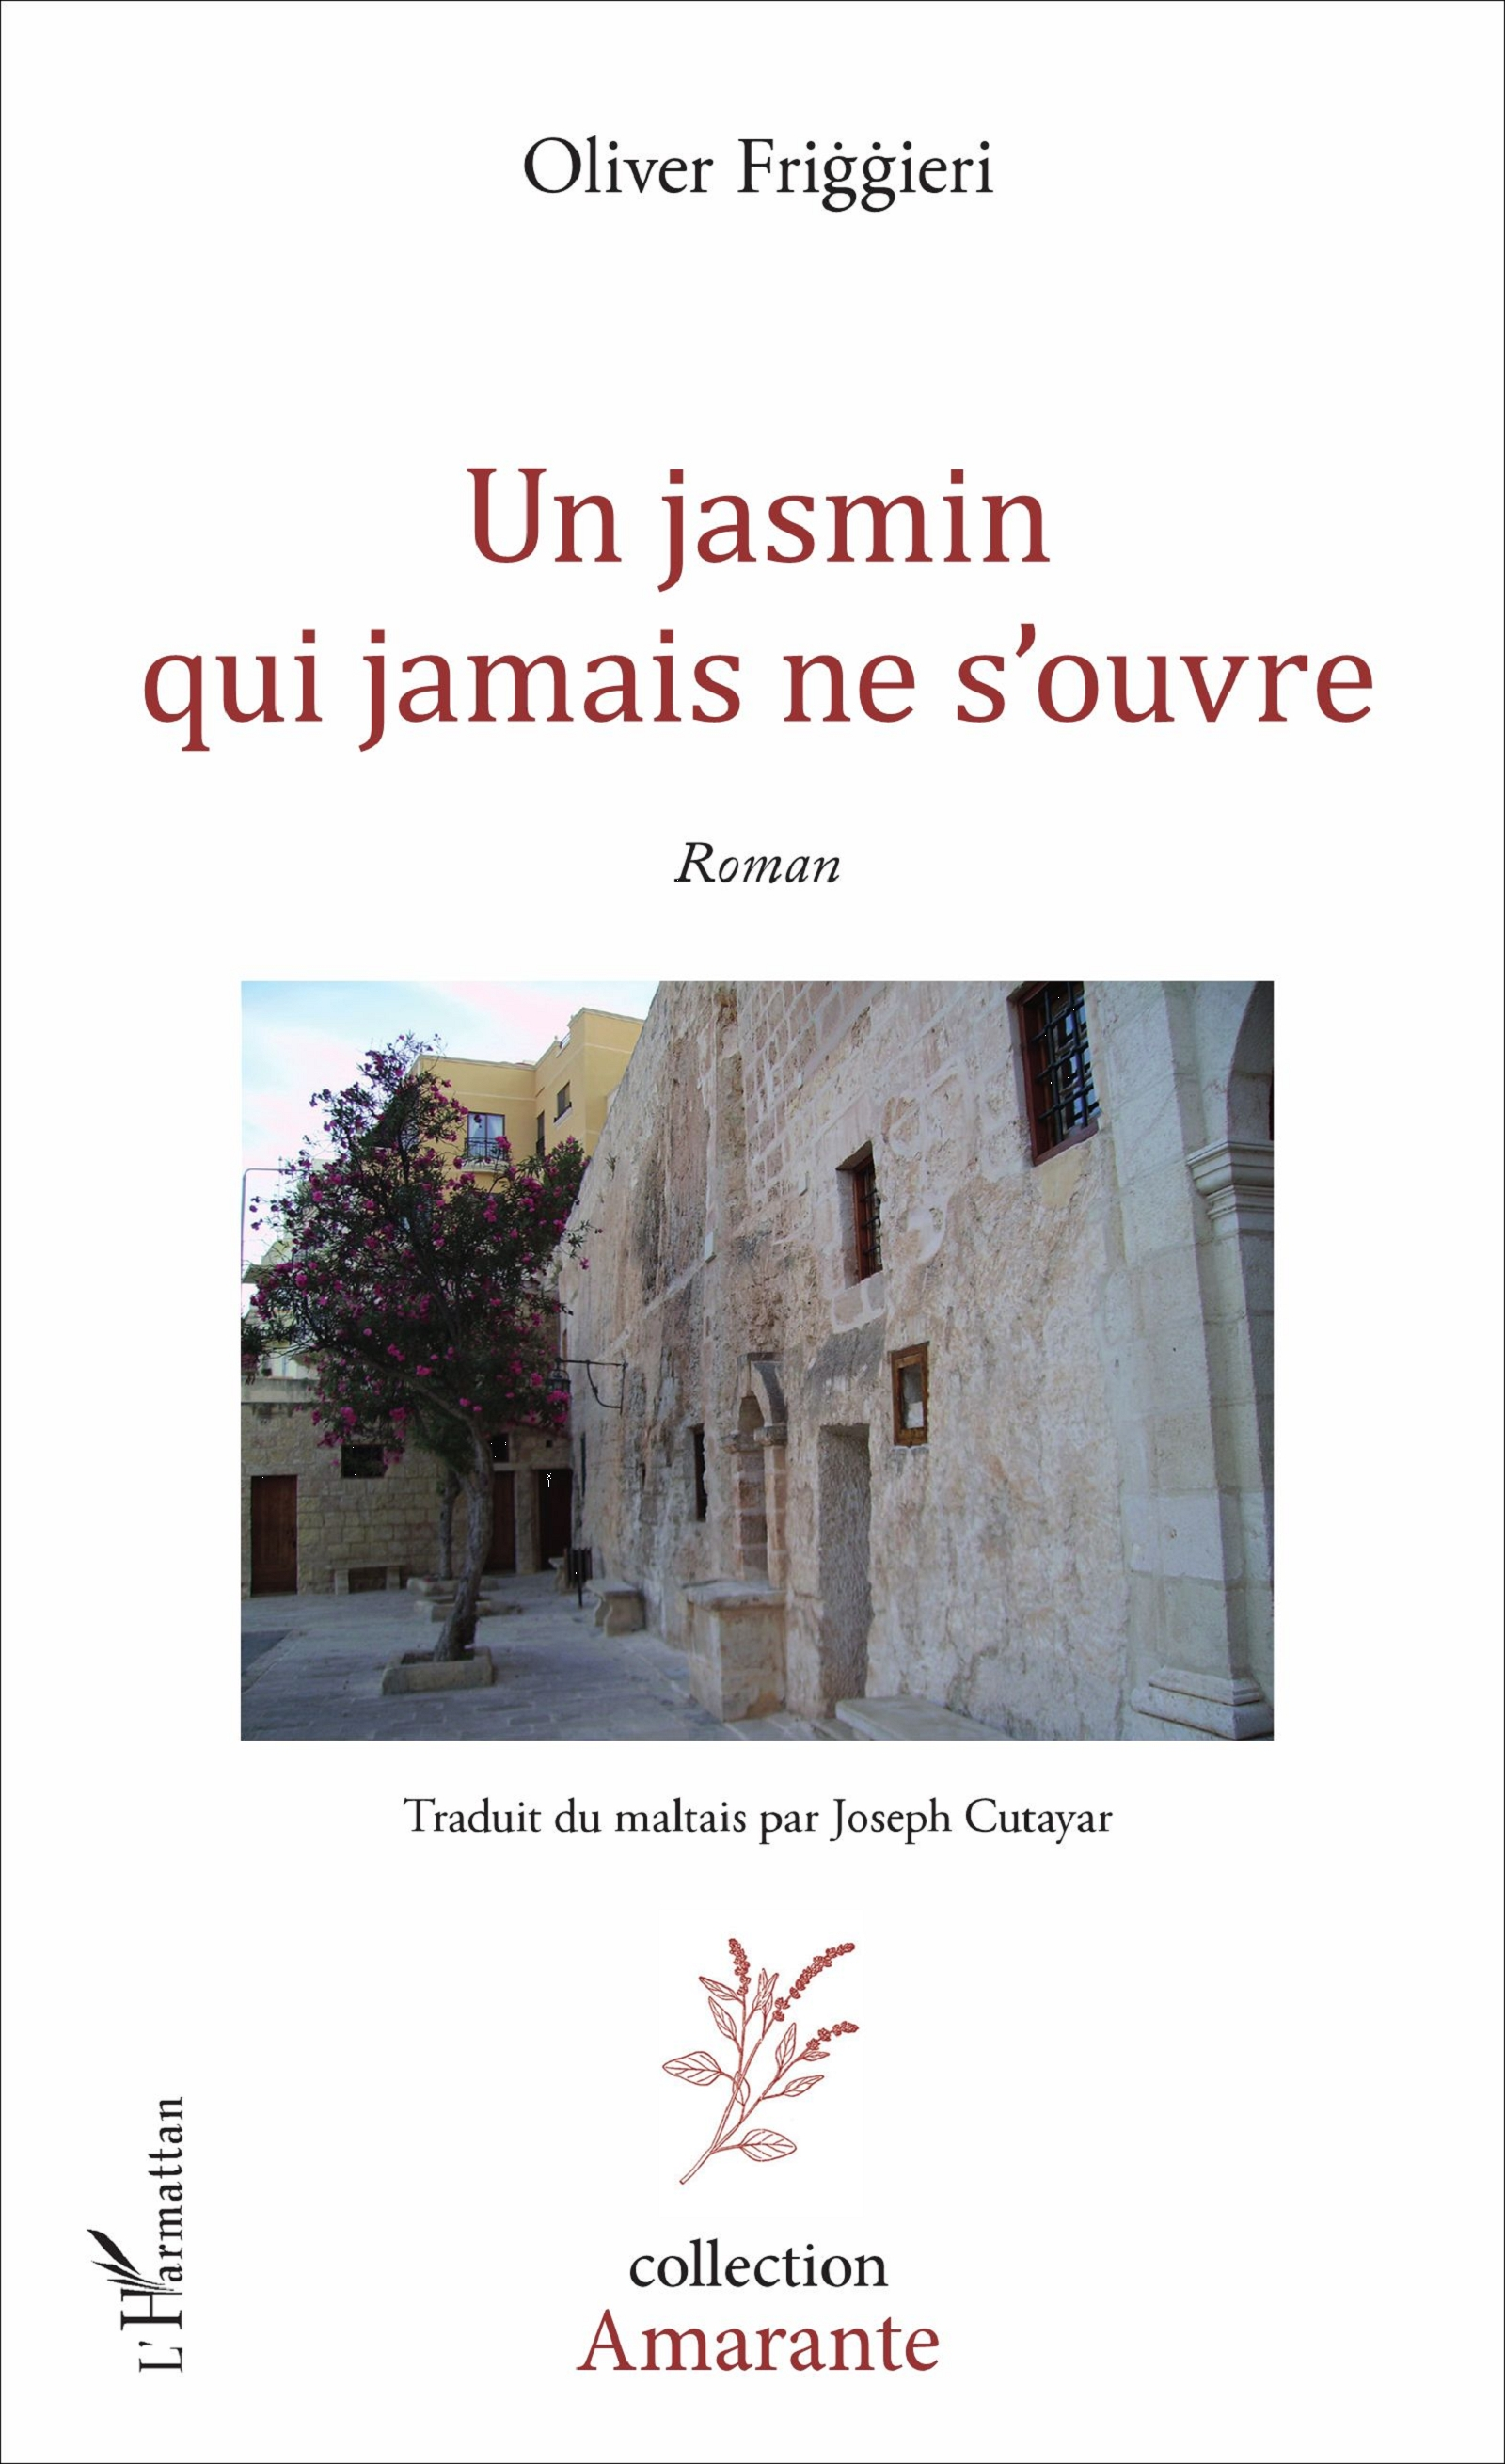 un jasmin qui jamais ne s 39 ouvre roman oliver friggieri livre ebook epub. Black Bedroom Furniture Sets. Home Design Ideas